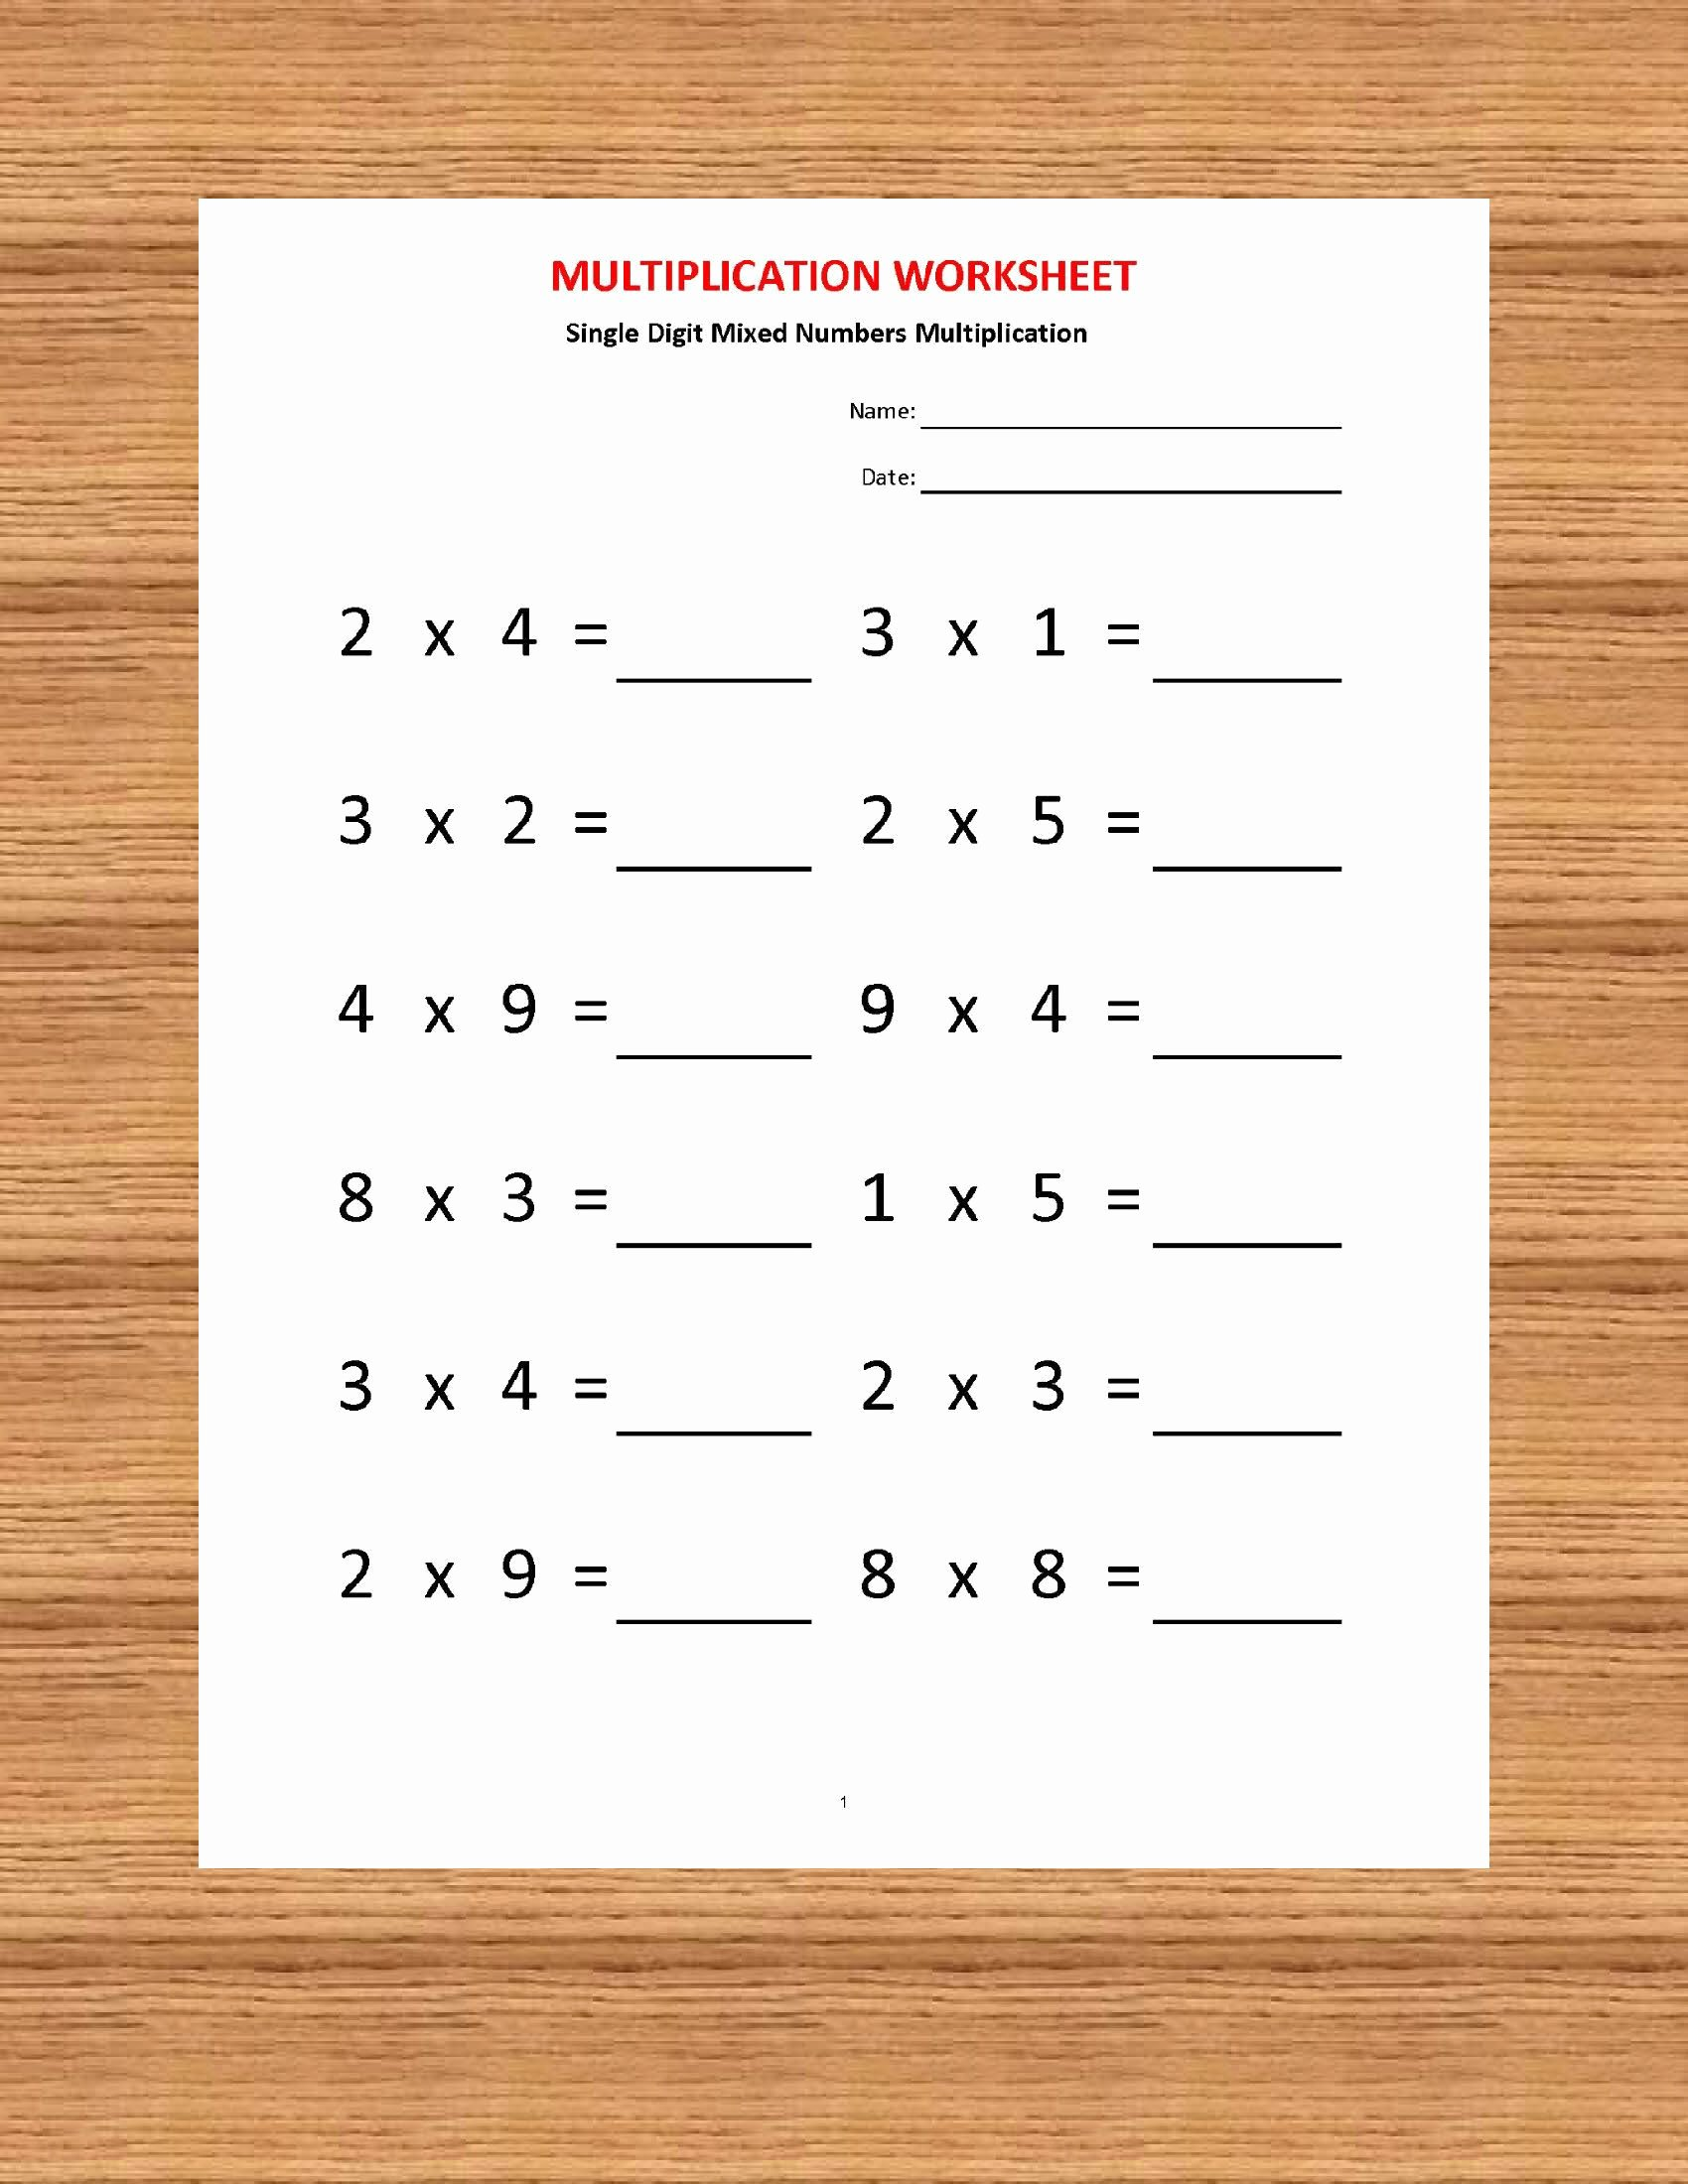 Multiplication Worksheets for Grade 2 with Pictures Fresh Multiplication Worksheets Printable Worksheets Etsy